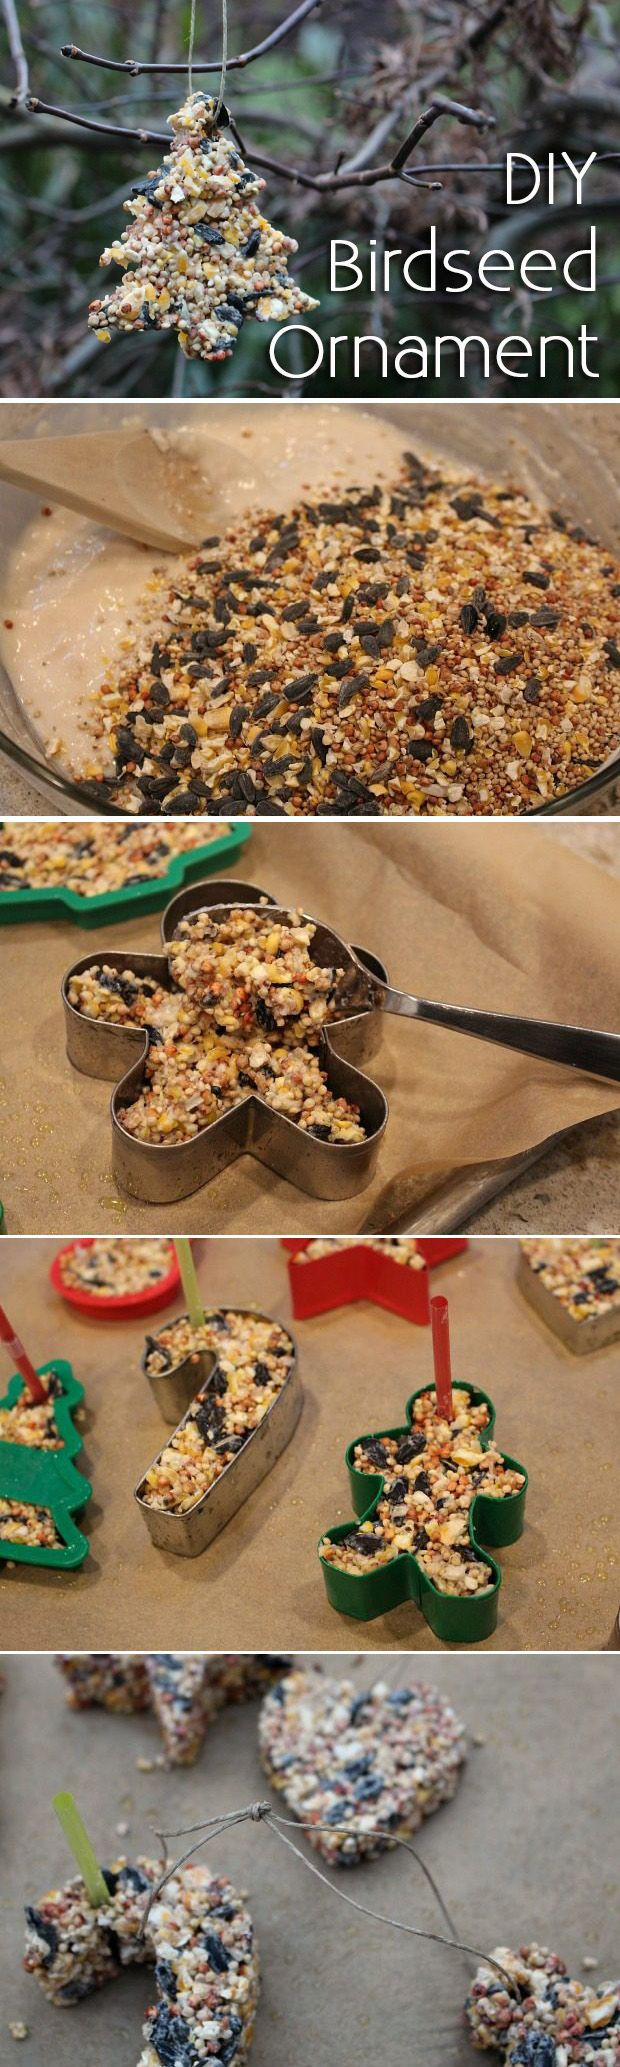 A festive craft the kids will enjoy making and the the birds will love! A homemade birdseed Christmas ornament is inexpensive and exactly what your naked, winter tree needs. http://www.ehow.com/how_4629058_make-birdseed-christmas-ornaments.html?utm_source=pinterest.com&utm_medium=referral&utm_content=blog&utm_campaign=fanpage